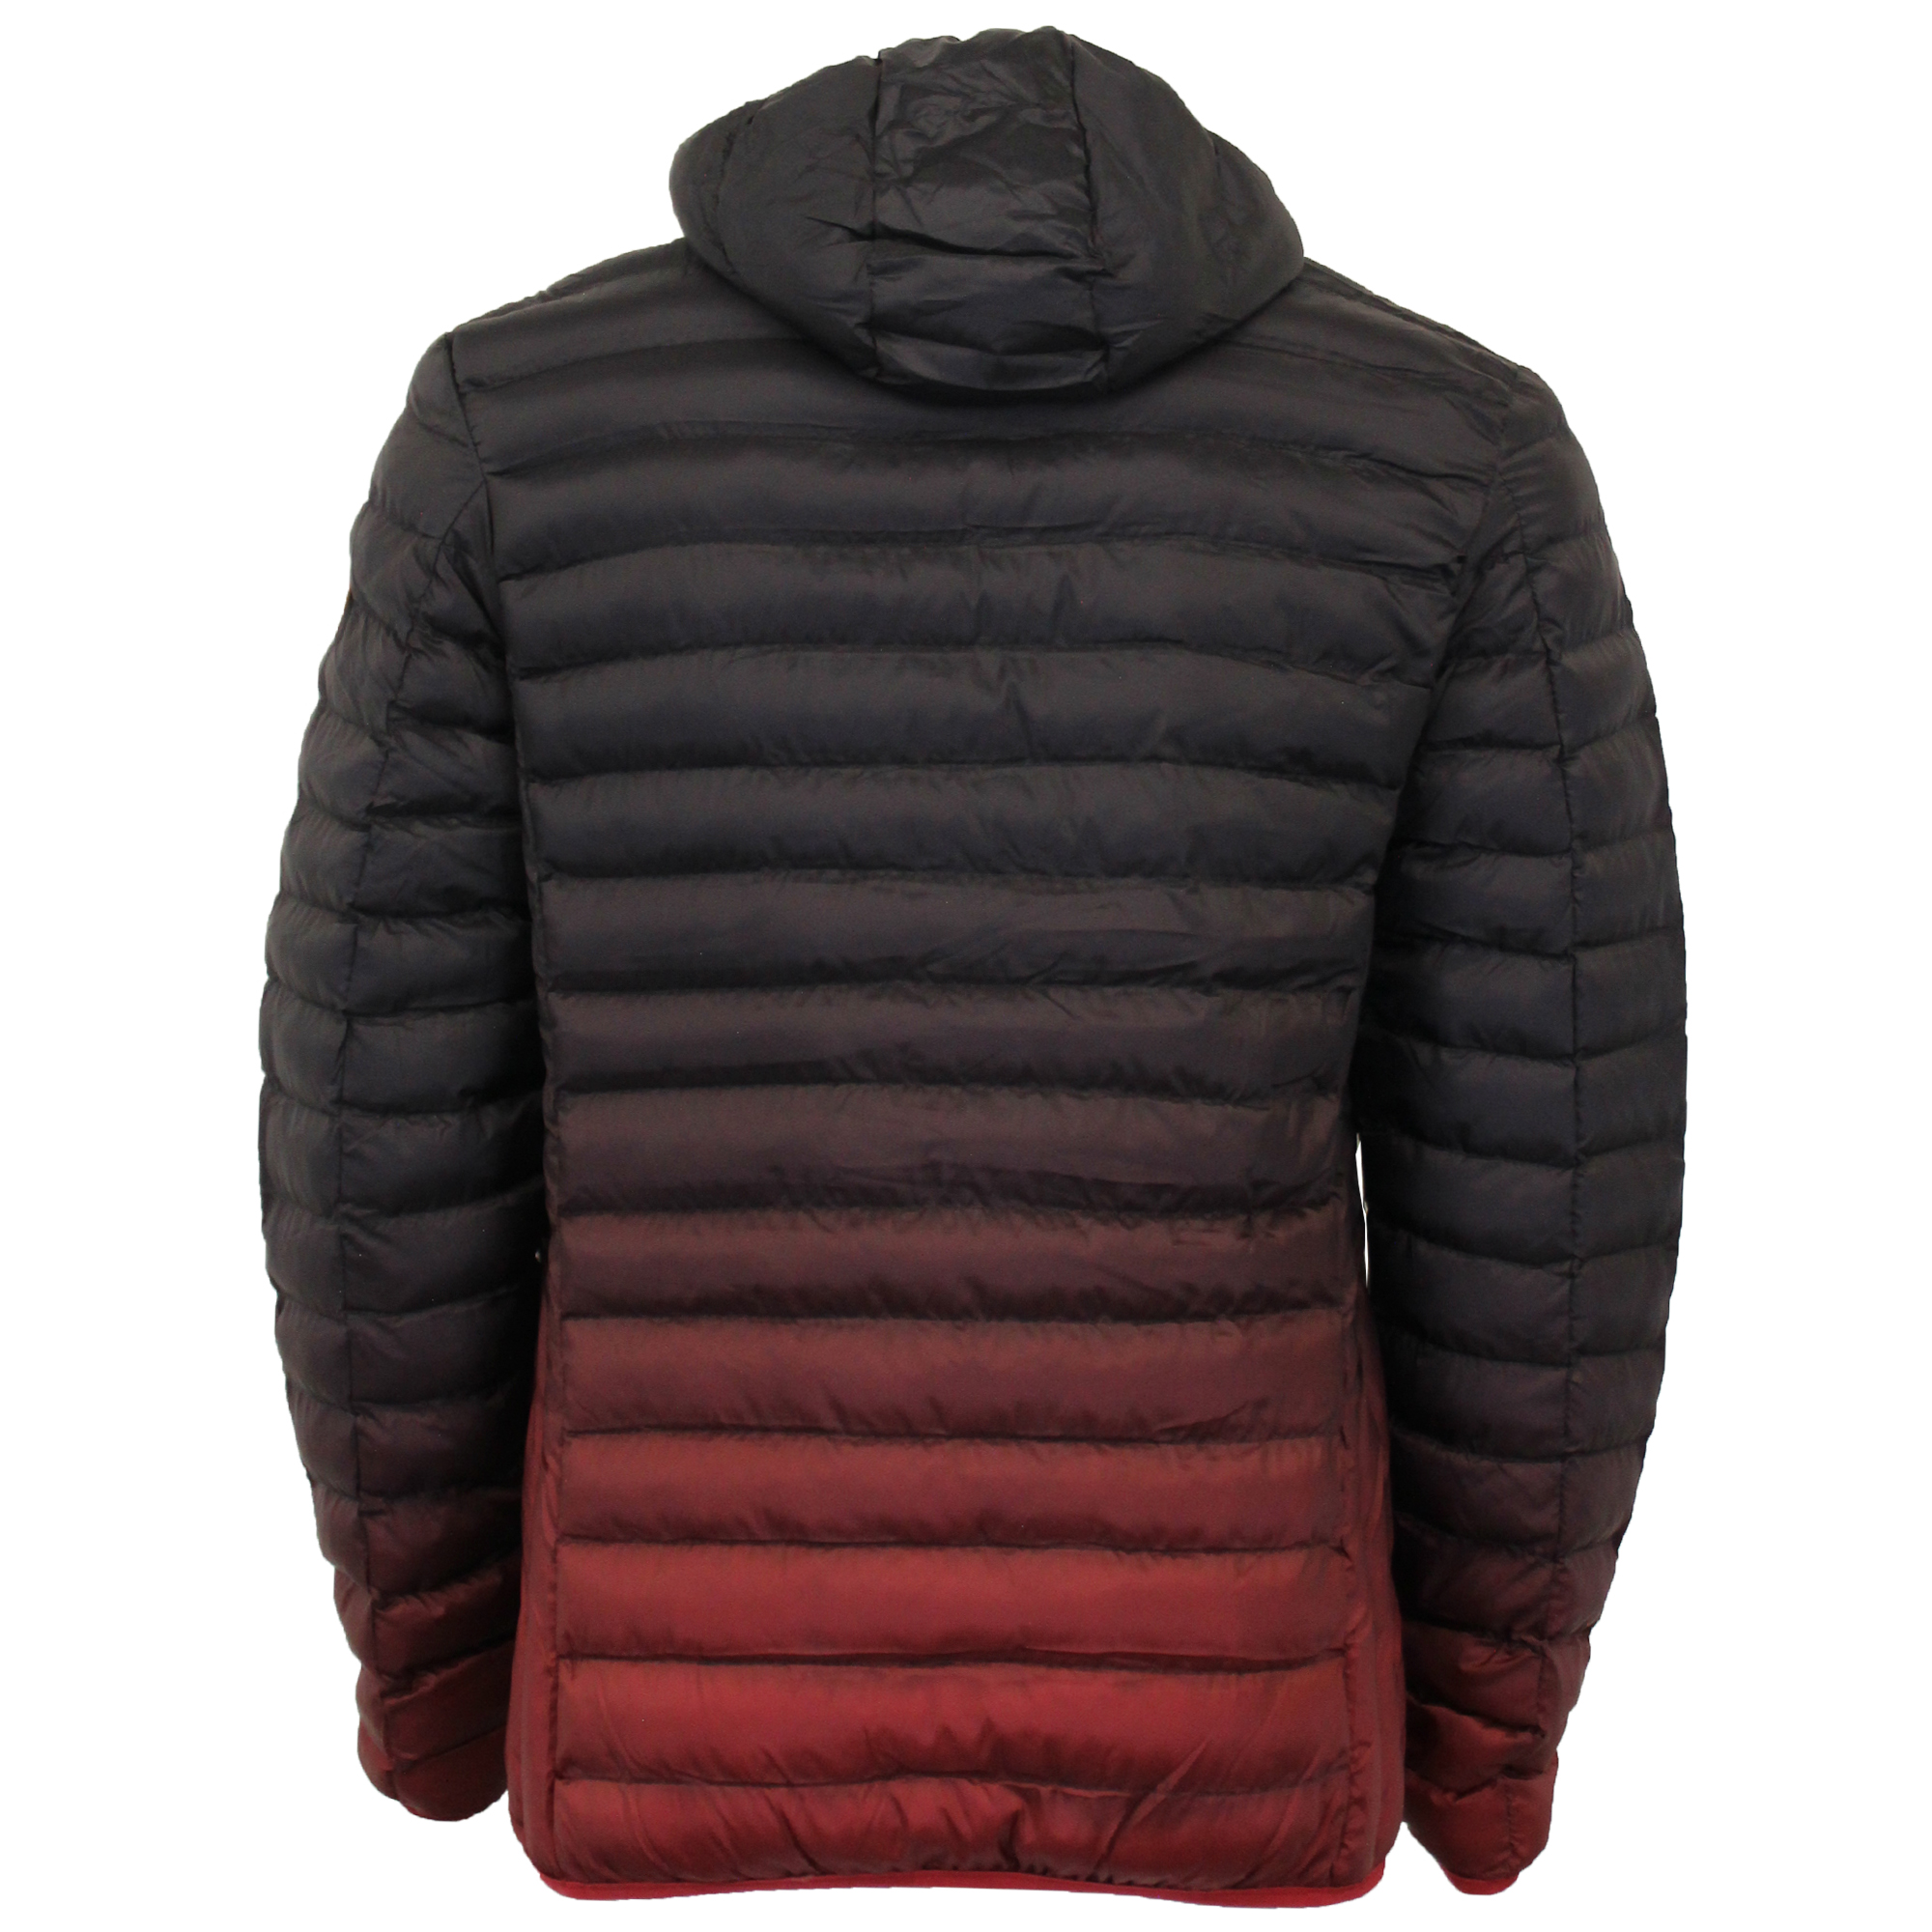 Mens-Jacket-Crosshatch-Hooded-Padded-Quilted-Two-Tone-FADEDOWN-Lined-Winter-New thumbnail 13